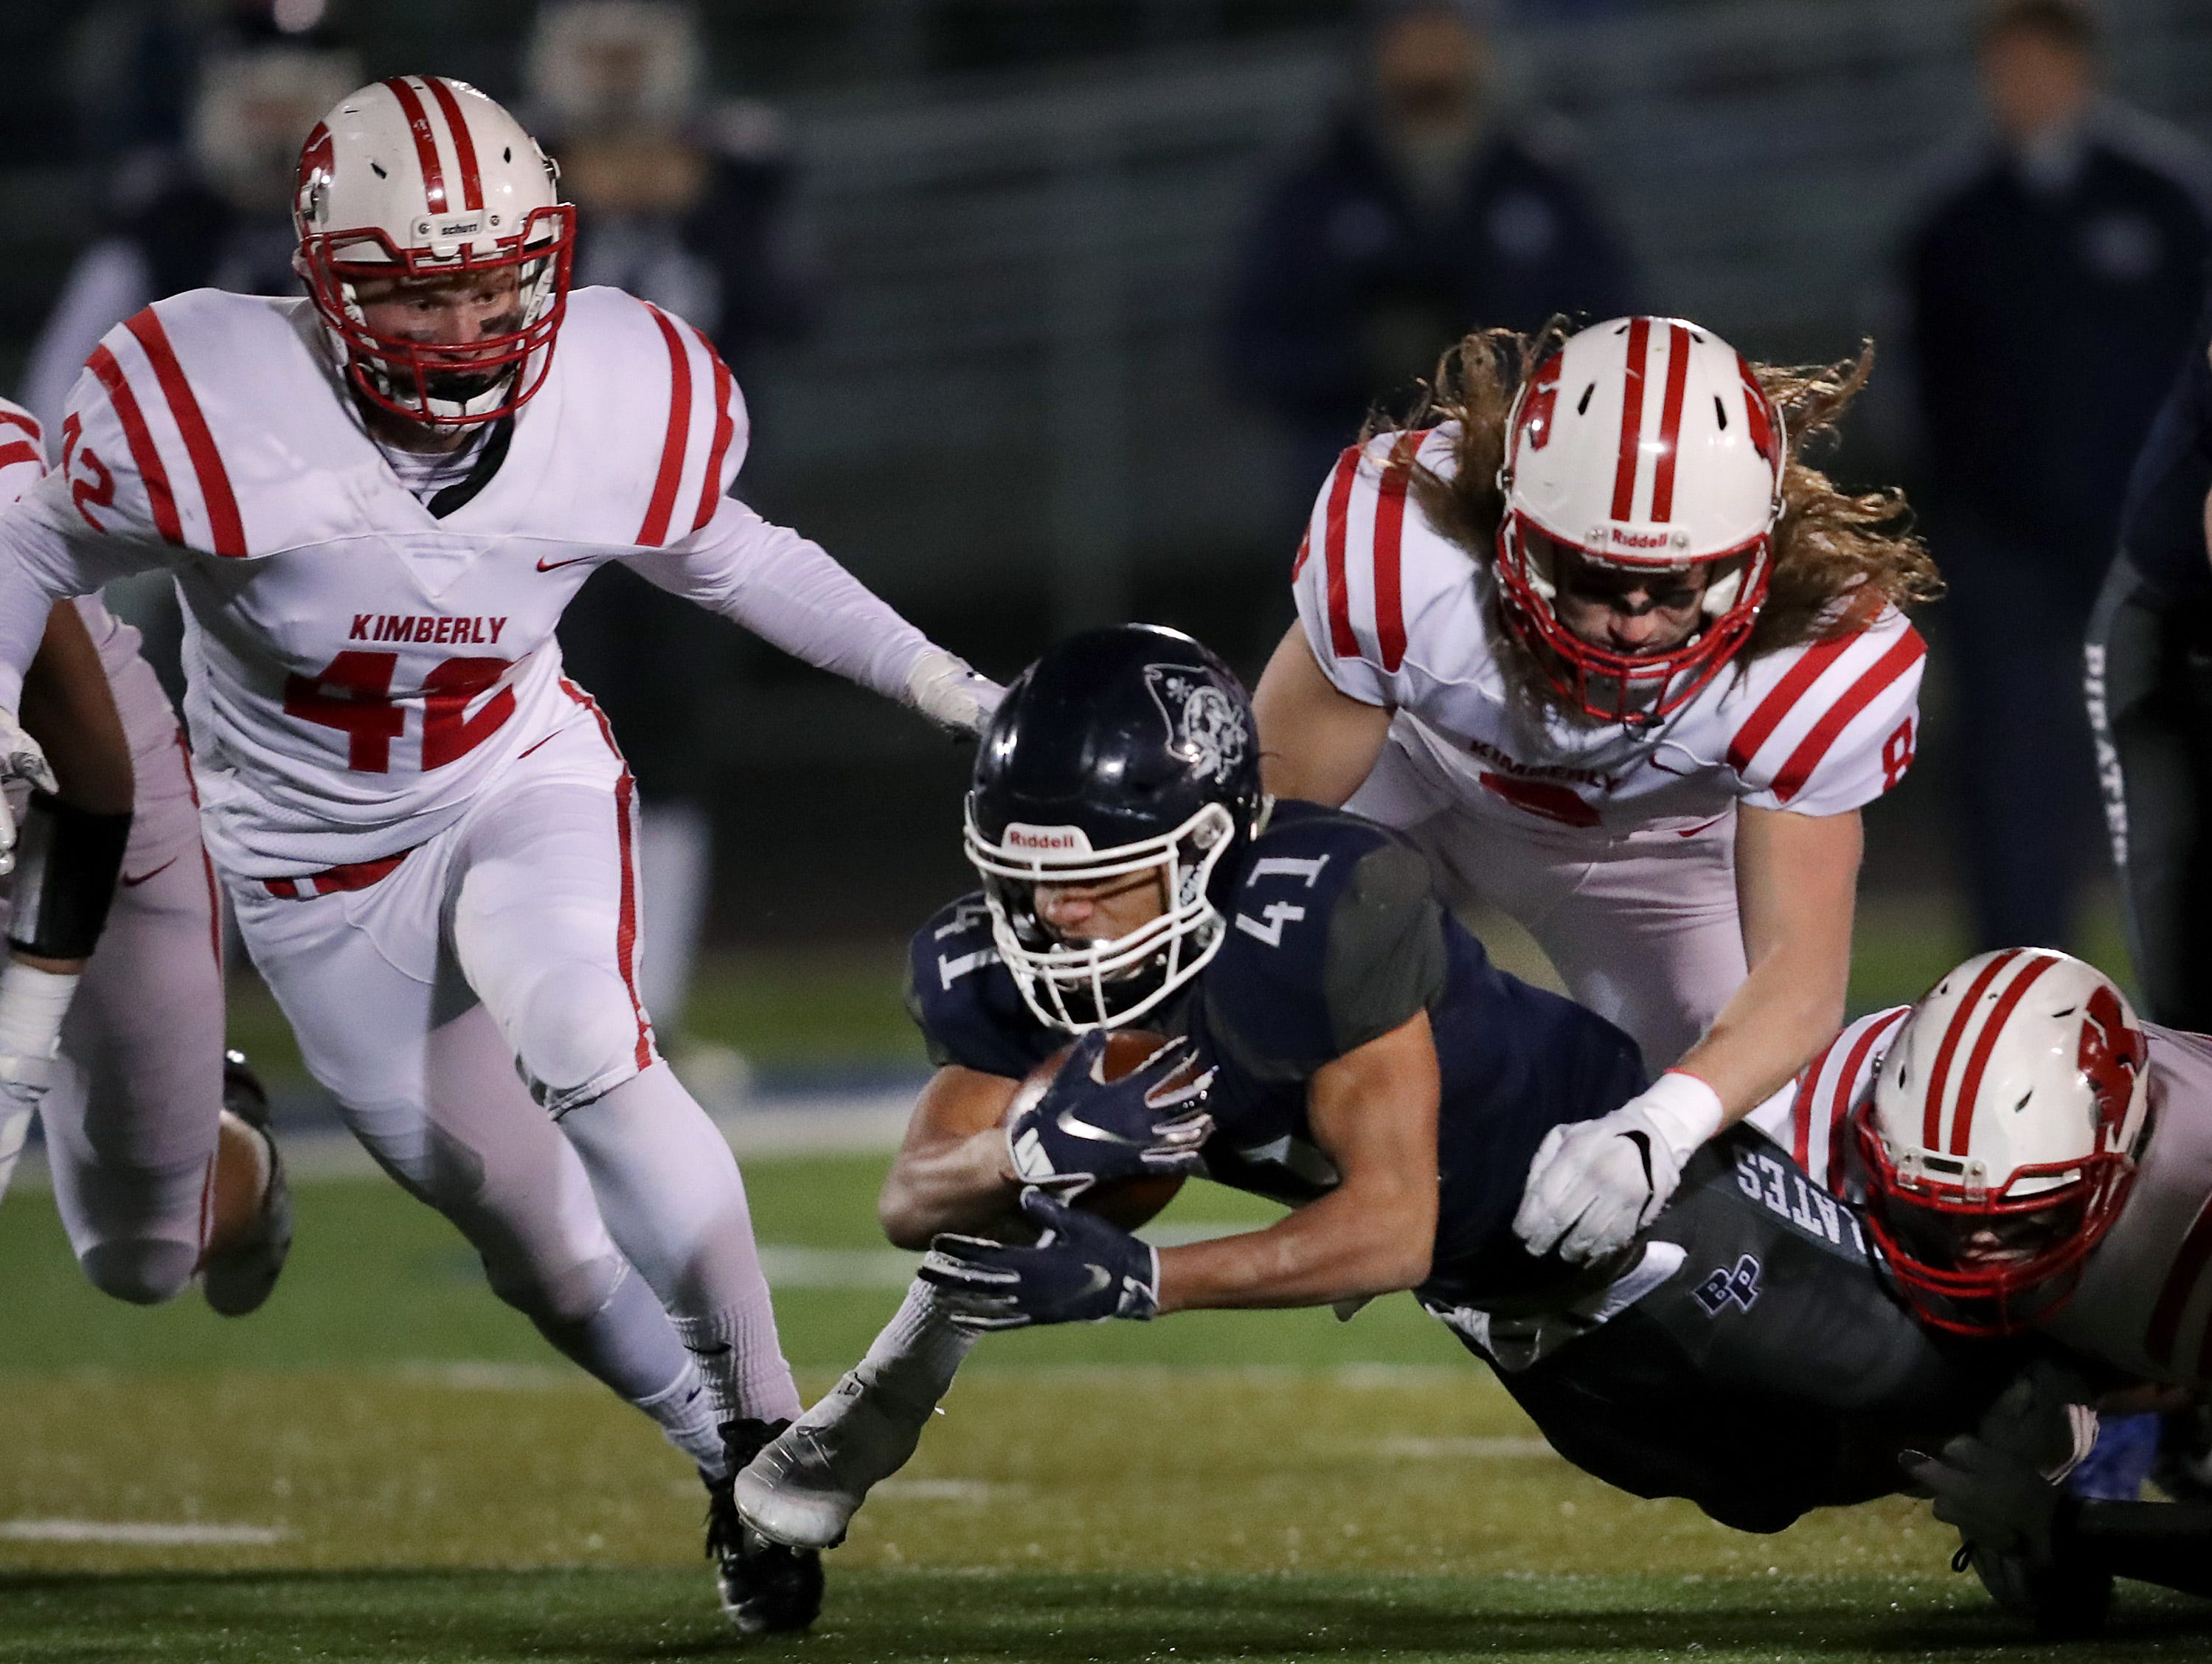 Kimberly High School's #42 Zach Arent, #8 Danny Kaltenbaugh and #22 Briar Barglind tackle Bay Port High School's #41 Isaiah Gash during their WIAA Division 1 state quarterfinal football game on Friday, November 2, 2018, in Suamico, Wis.  Kimberly defeated Bay Port 38 to 20. Wm. Glasheen/USA TODAY NETWORK-Wisconsin.